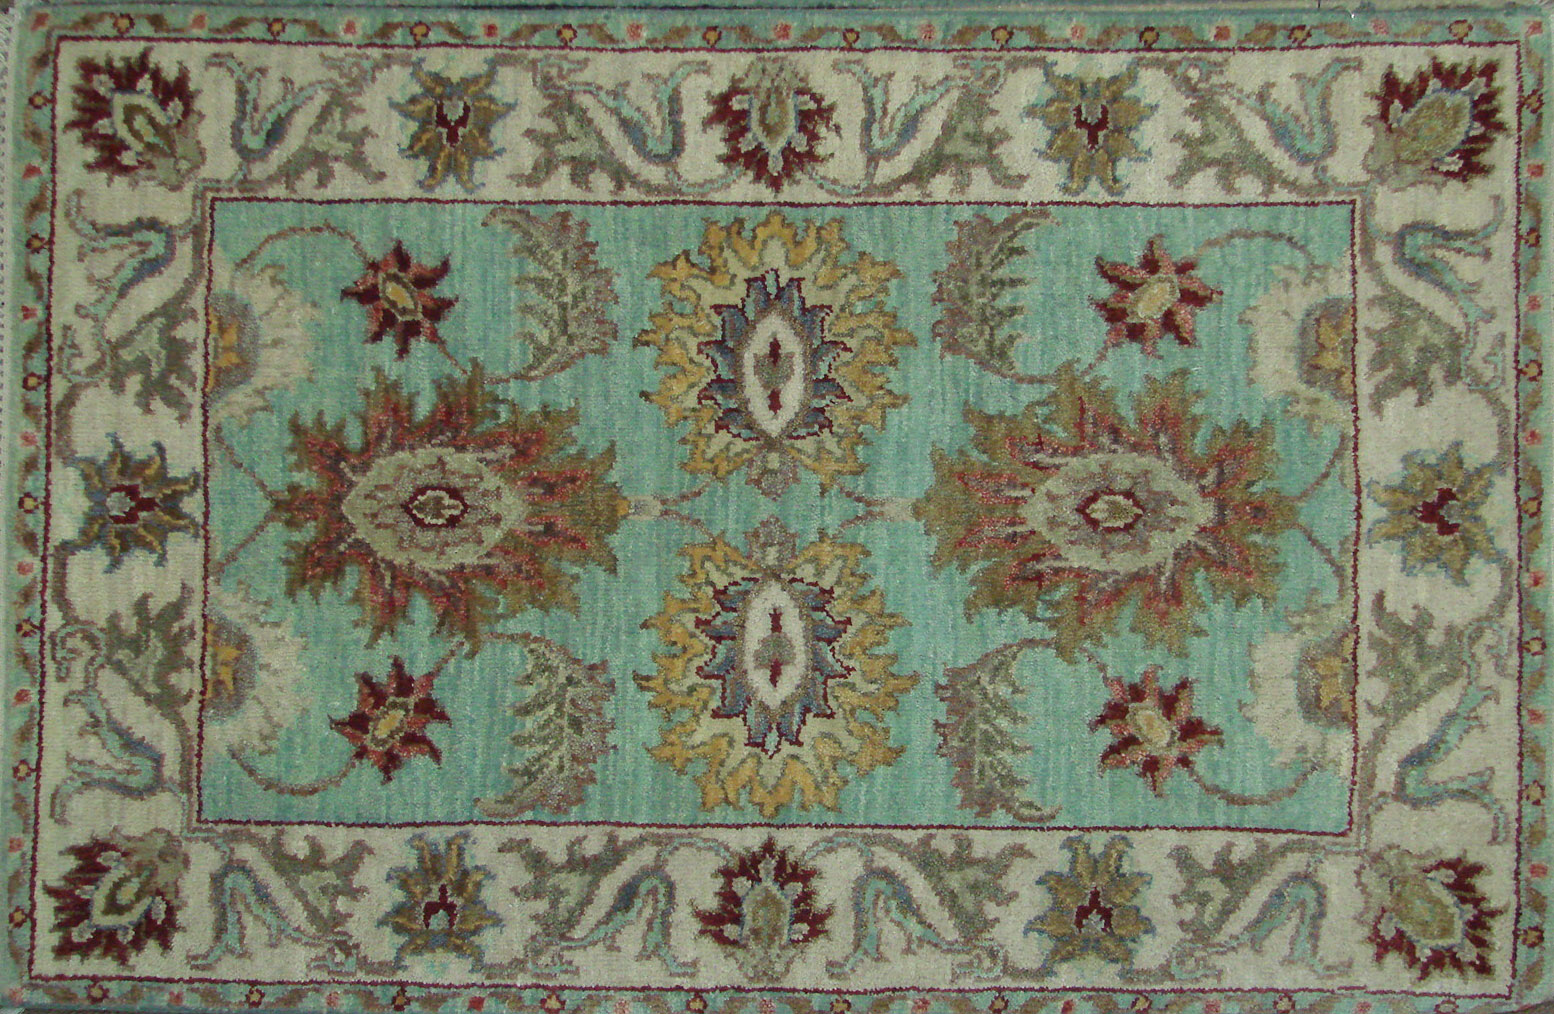 2X3 Traditional Hand Knotted Wool Area Rug - MR021988